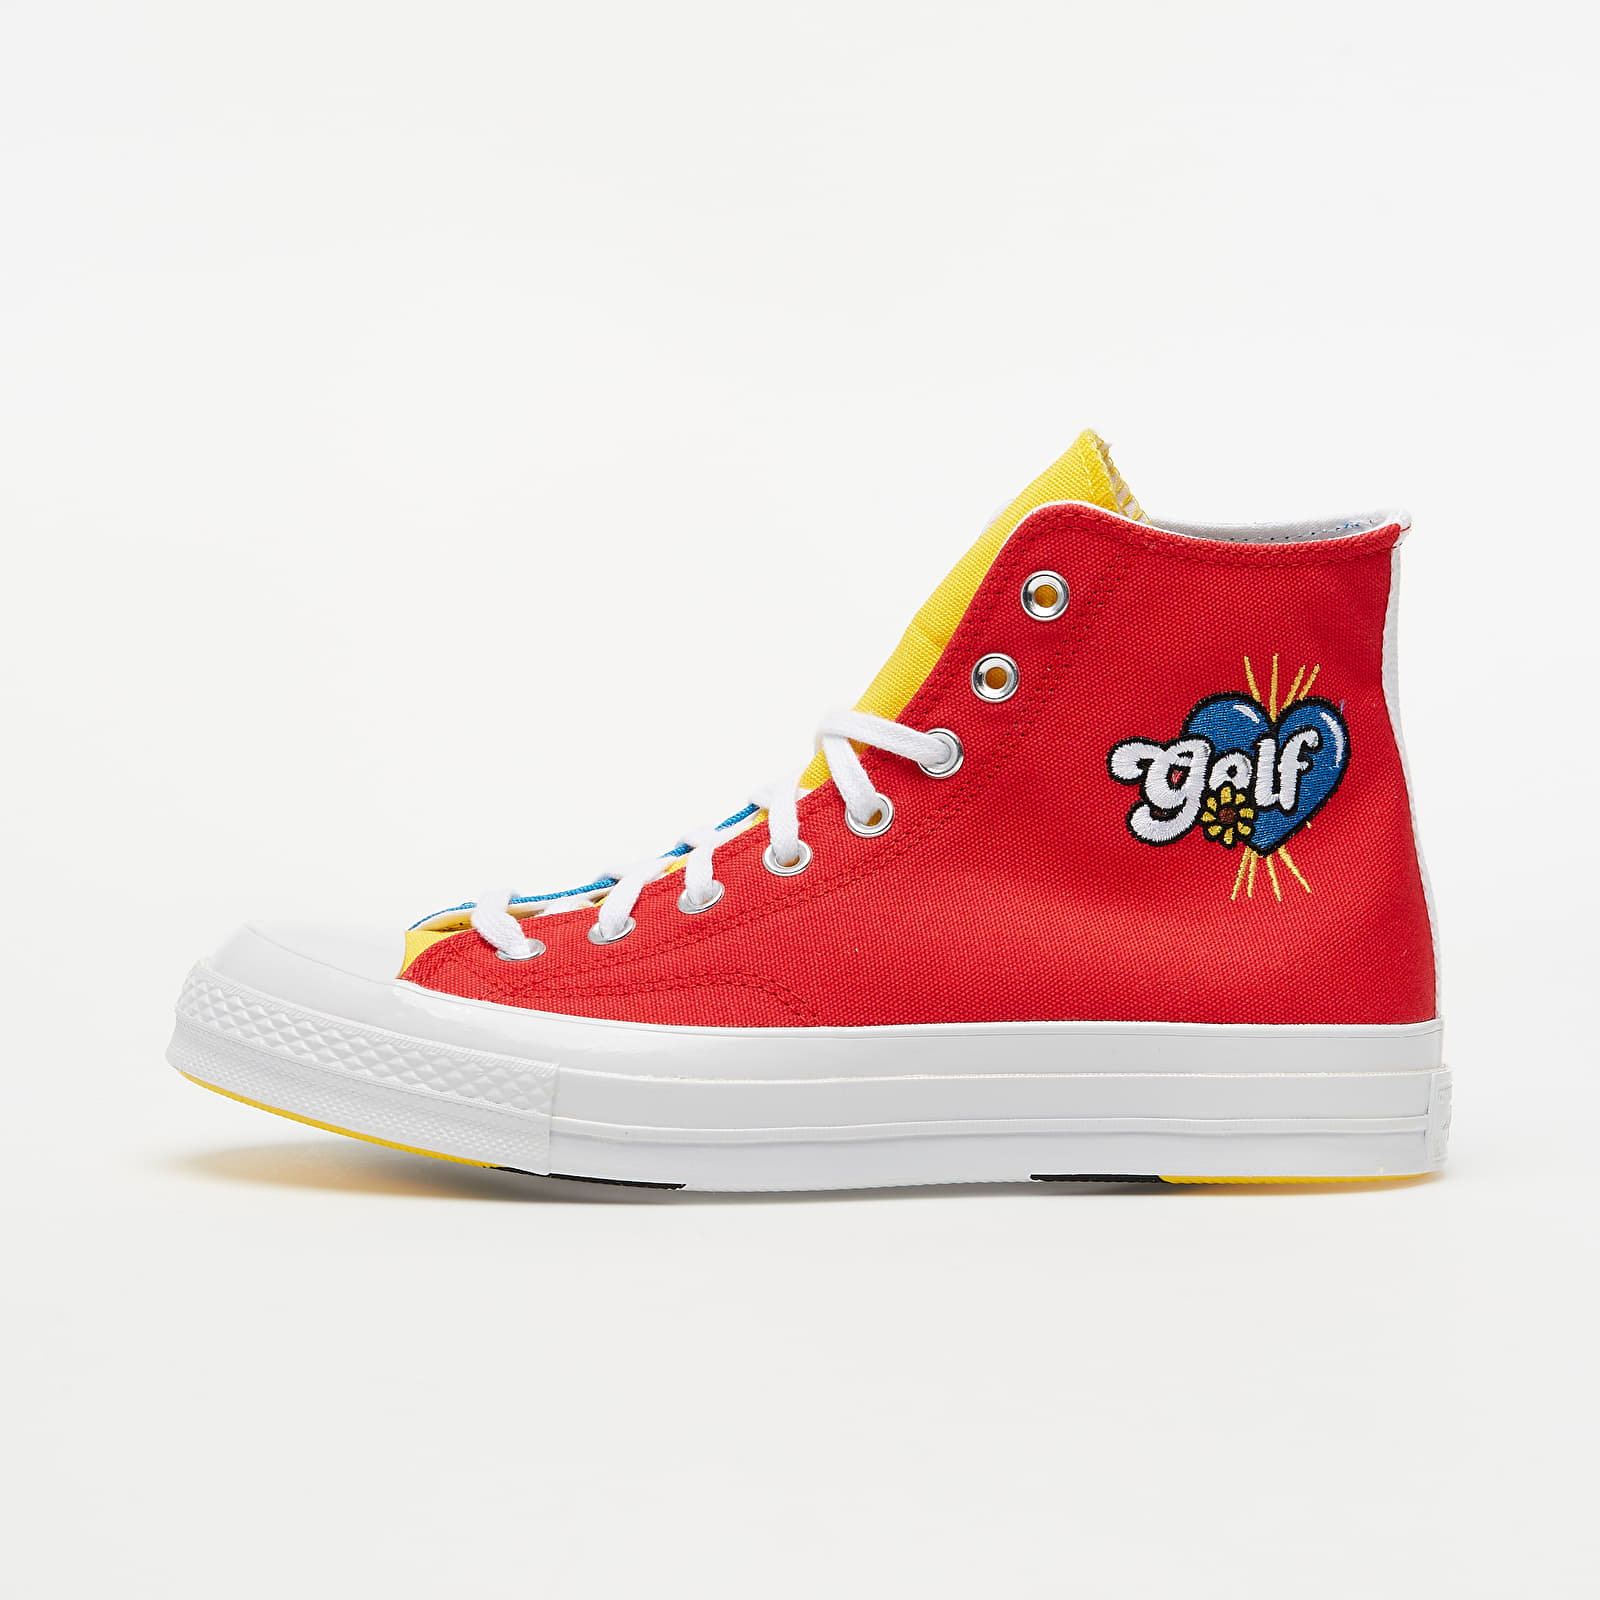 Chaussures et baskets homme Converse x Golf Wang Chuck 70 Blue Yellow/ Red